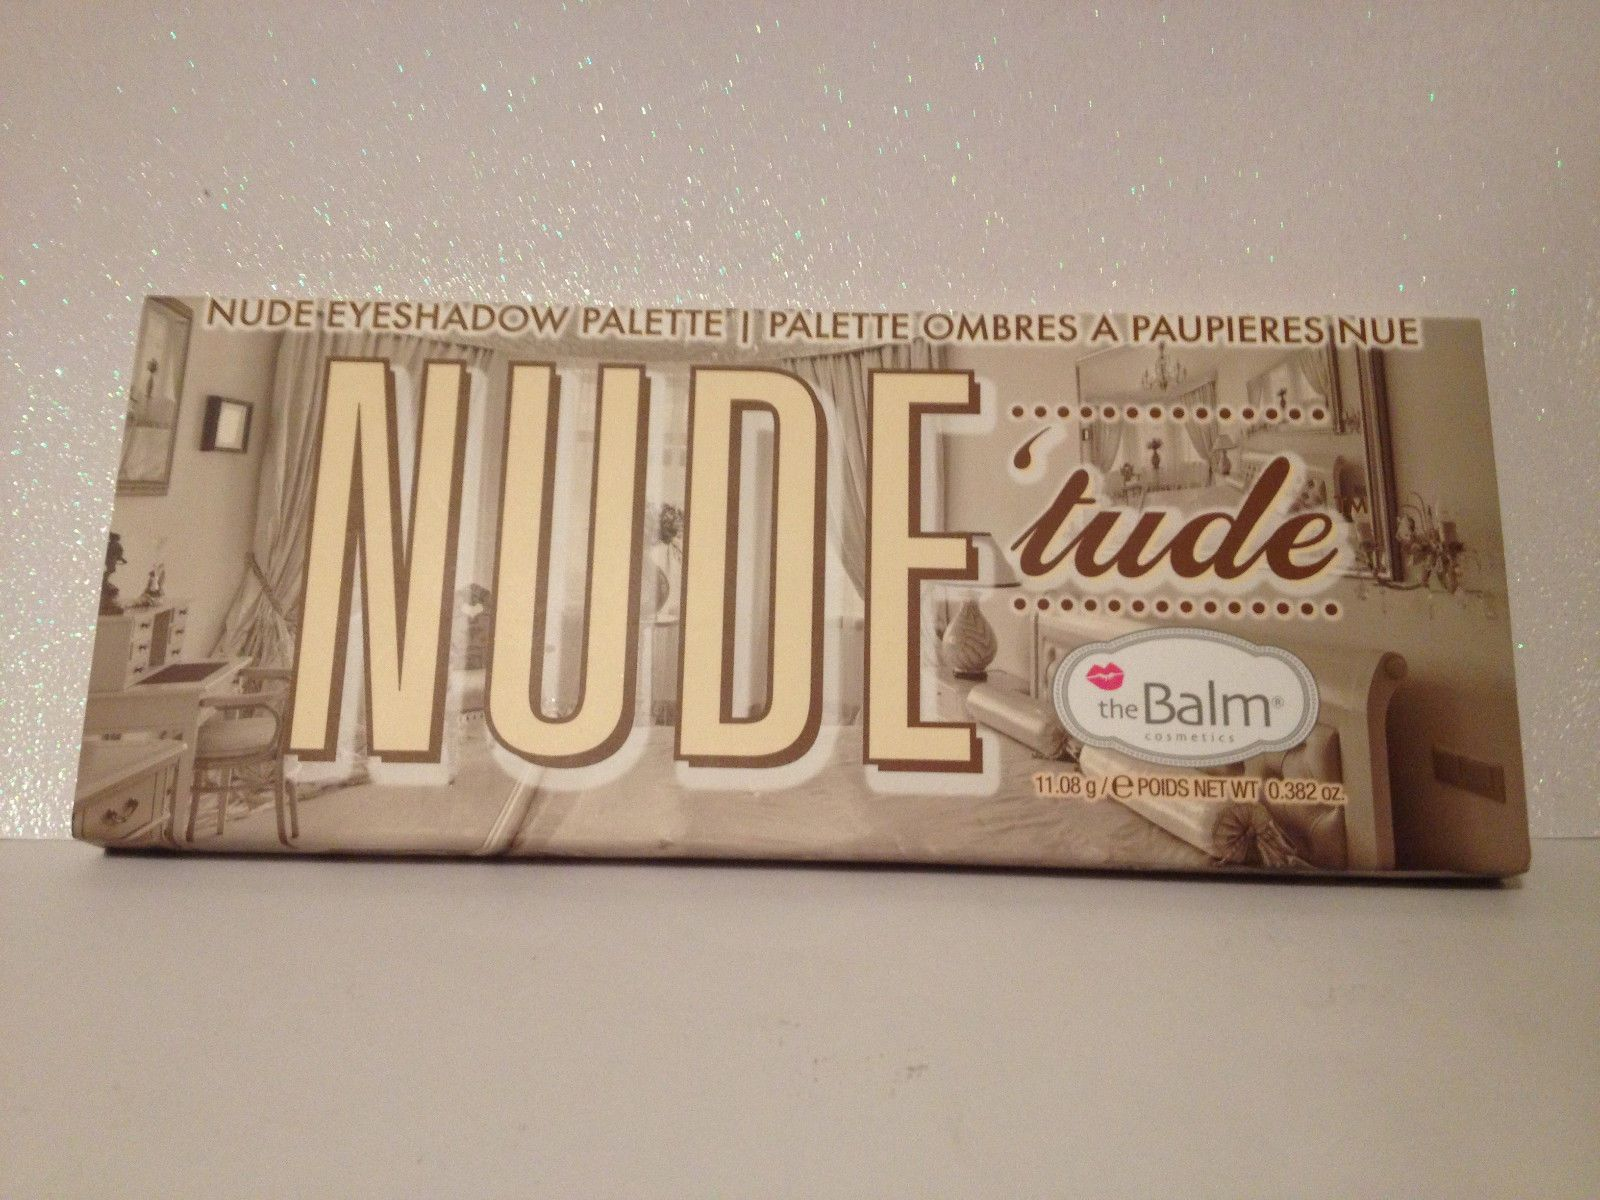 THEBALM THE BALM NUDE TUDE EYESHADOW PALETTE - NEW, FULL SIZE!!